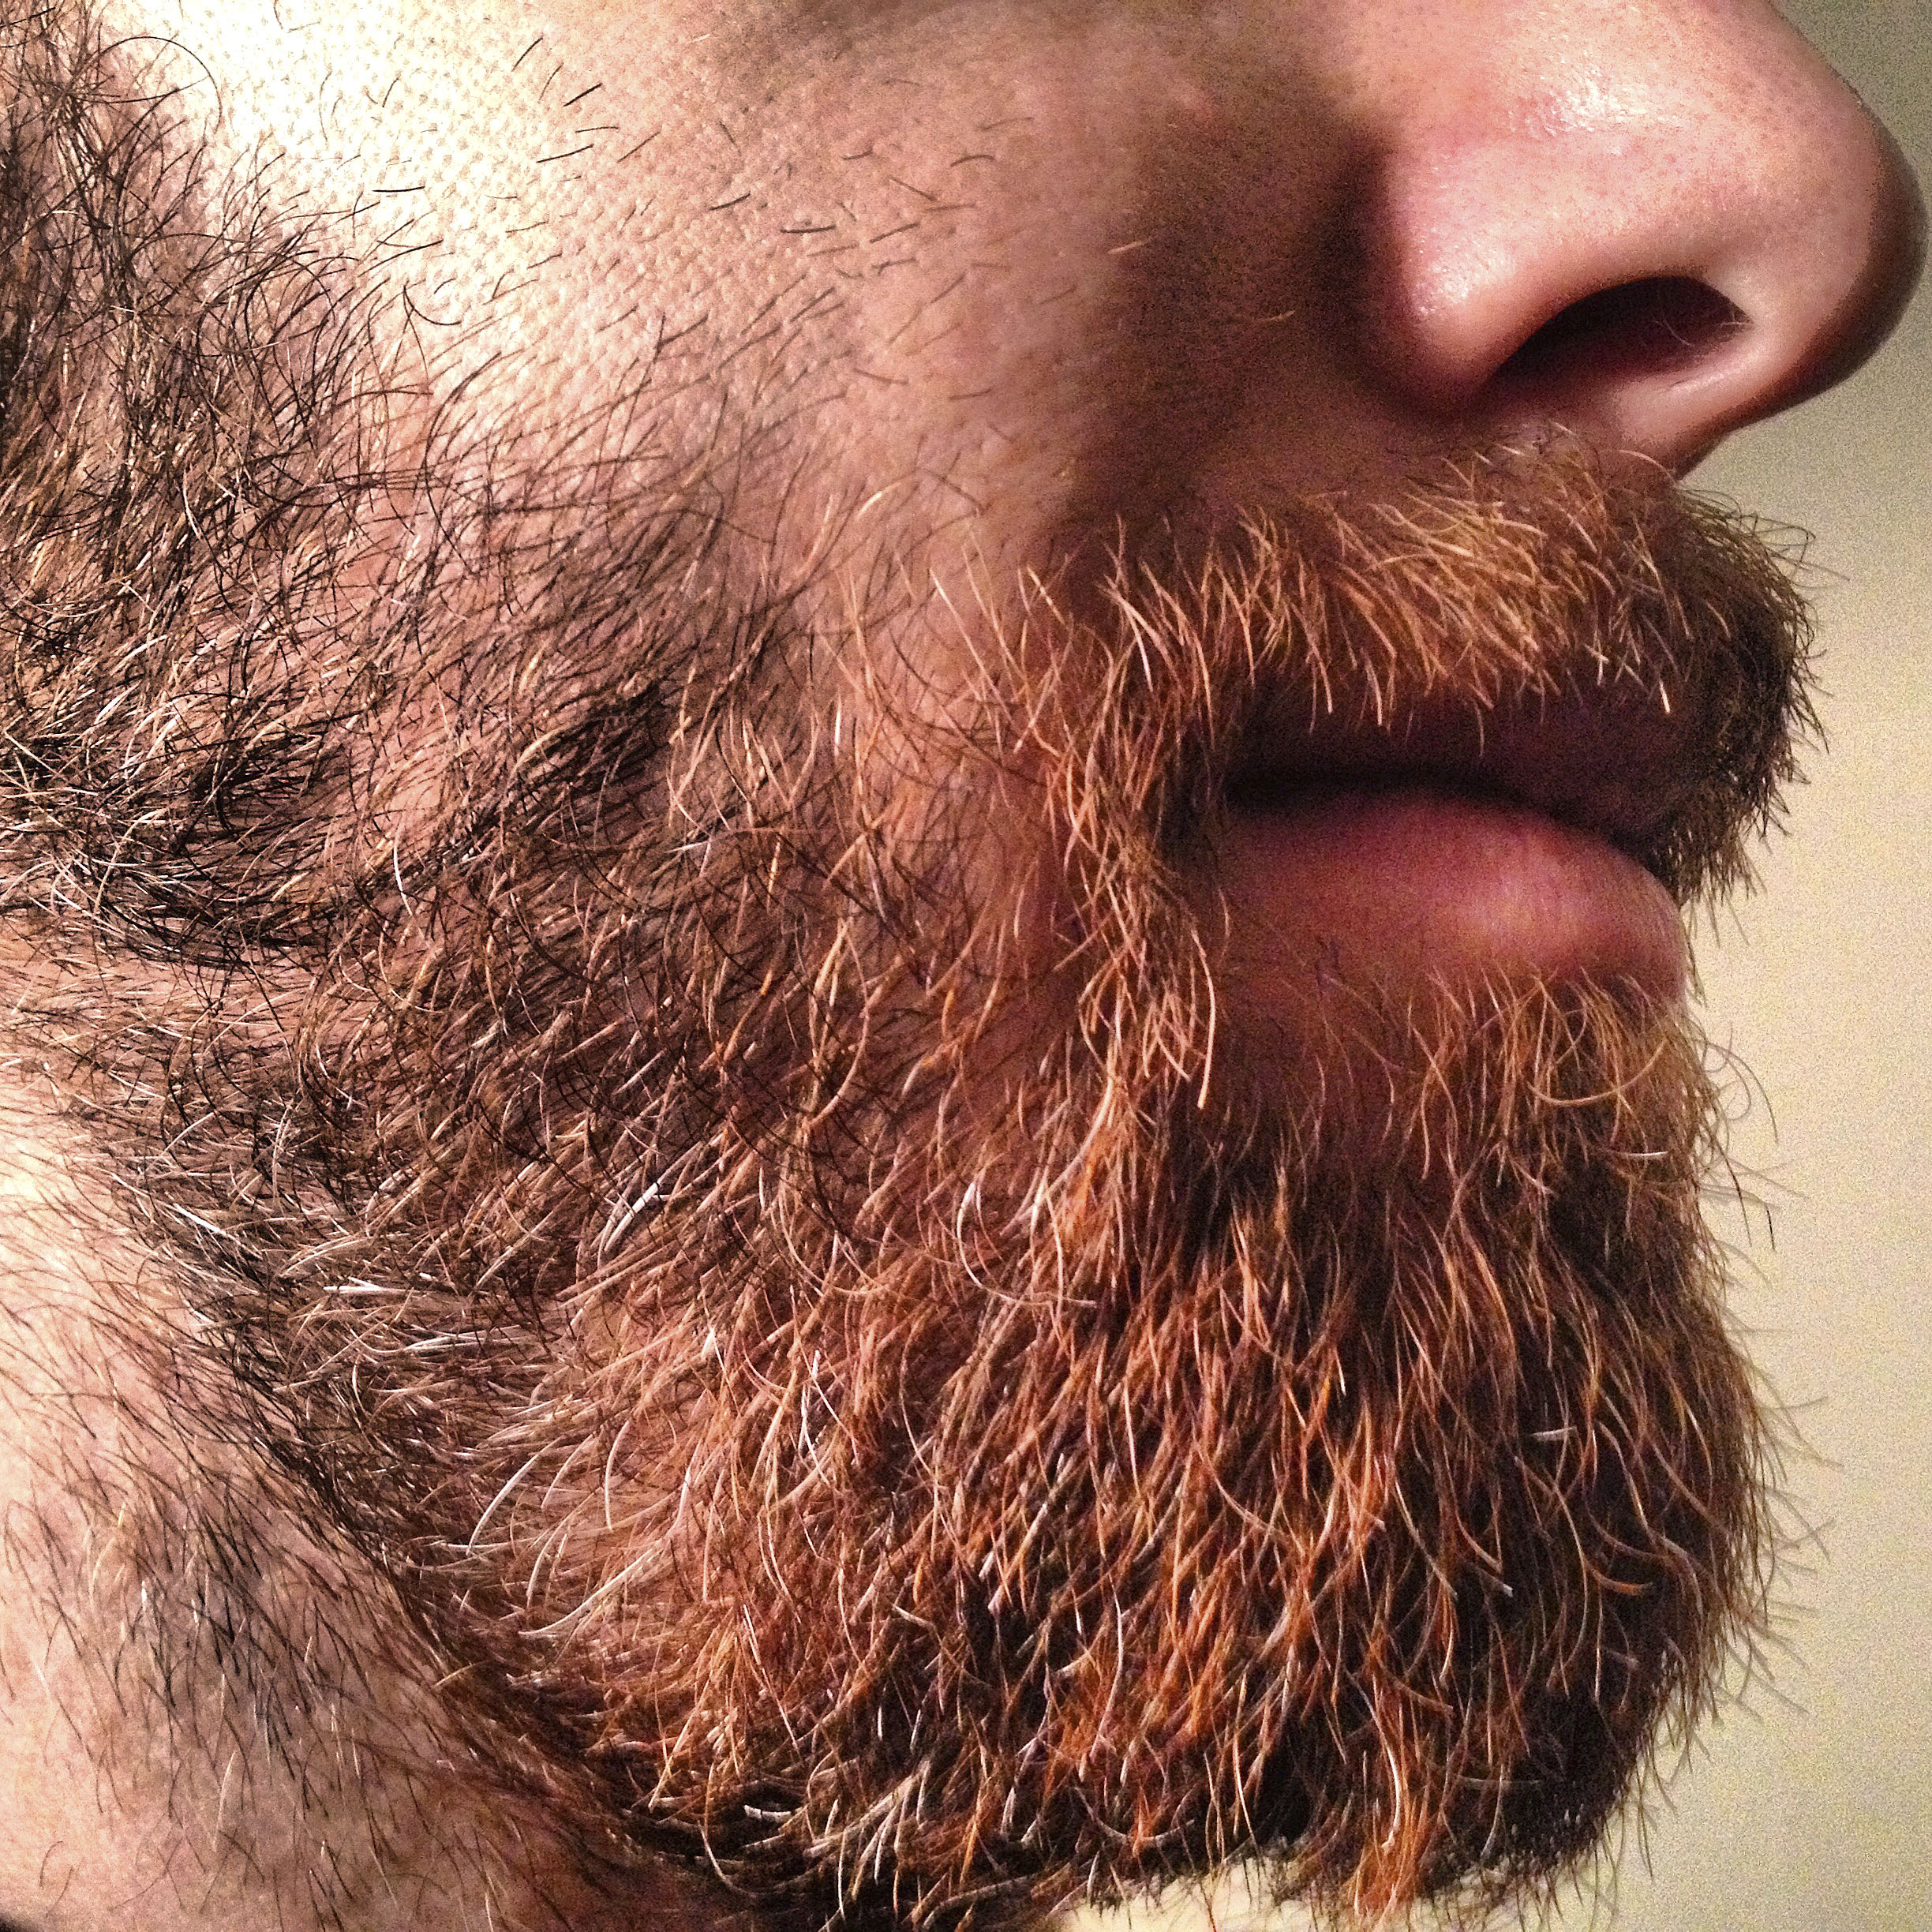 Microbiologist S Tests Show Beards Are Full Of Fecal